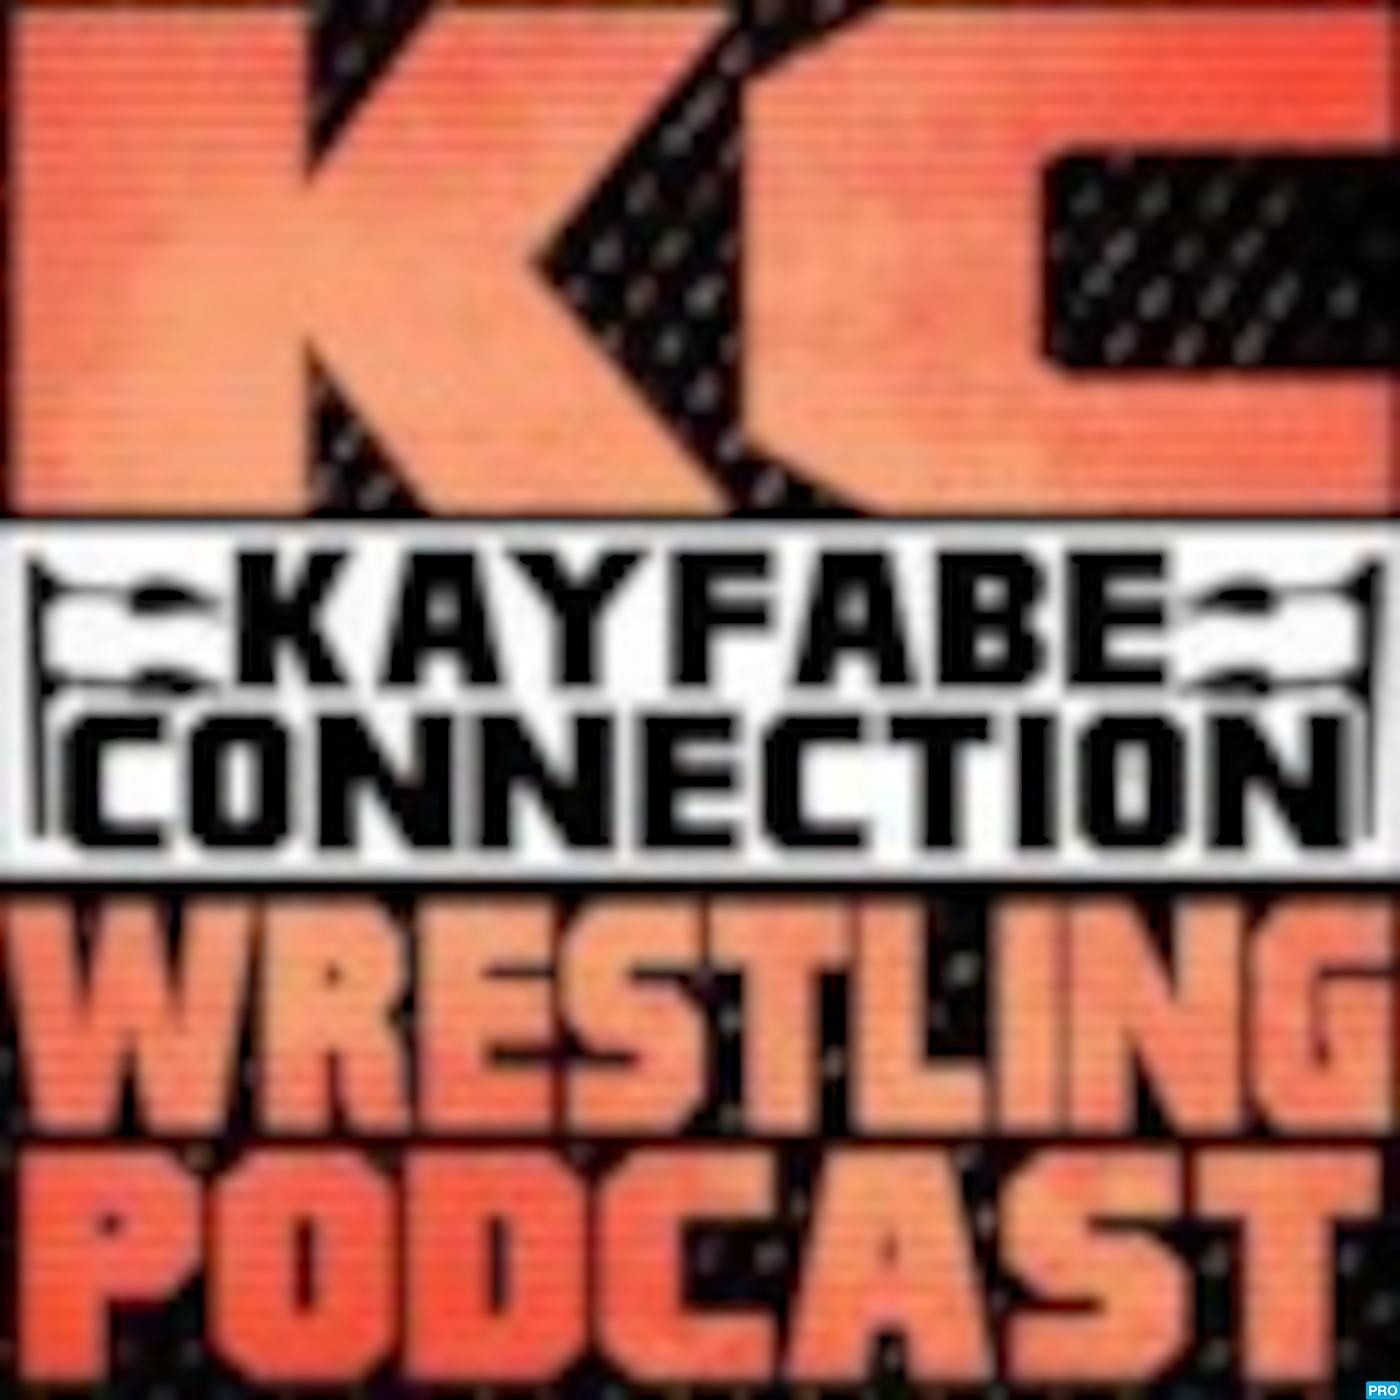 Kayfabe Connection